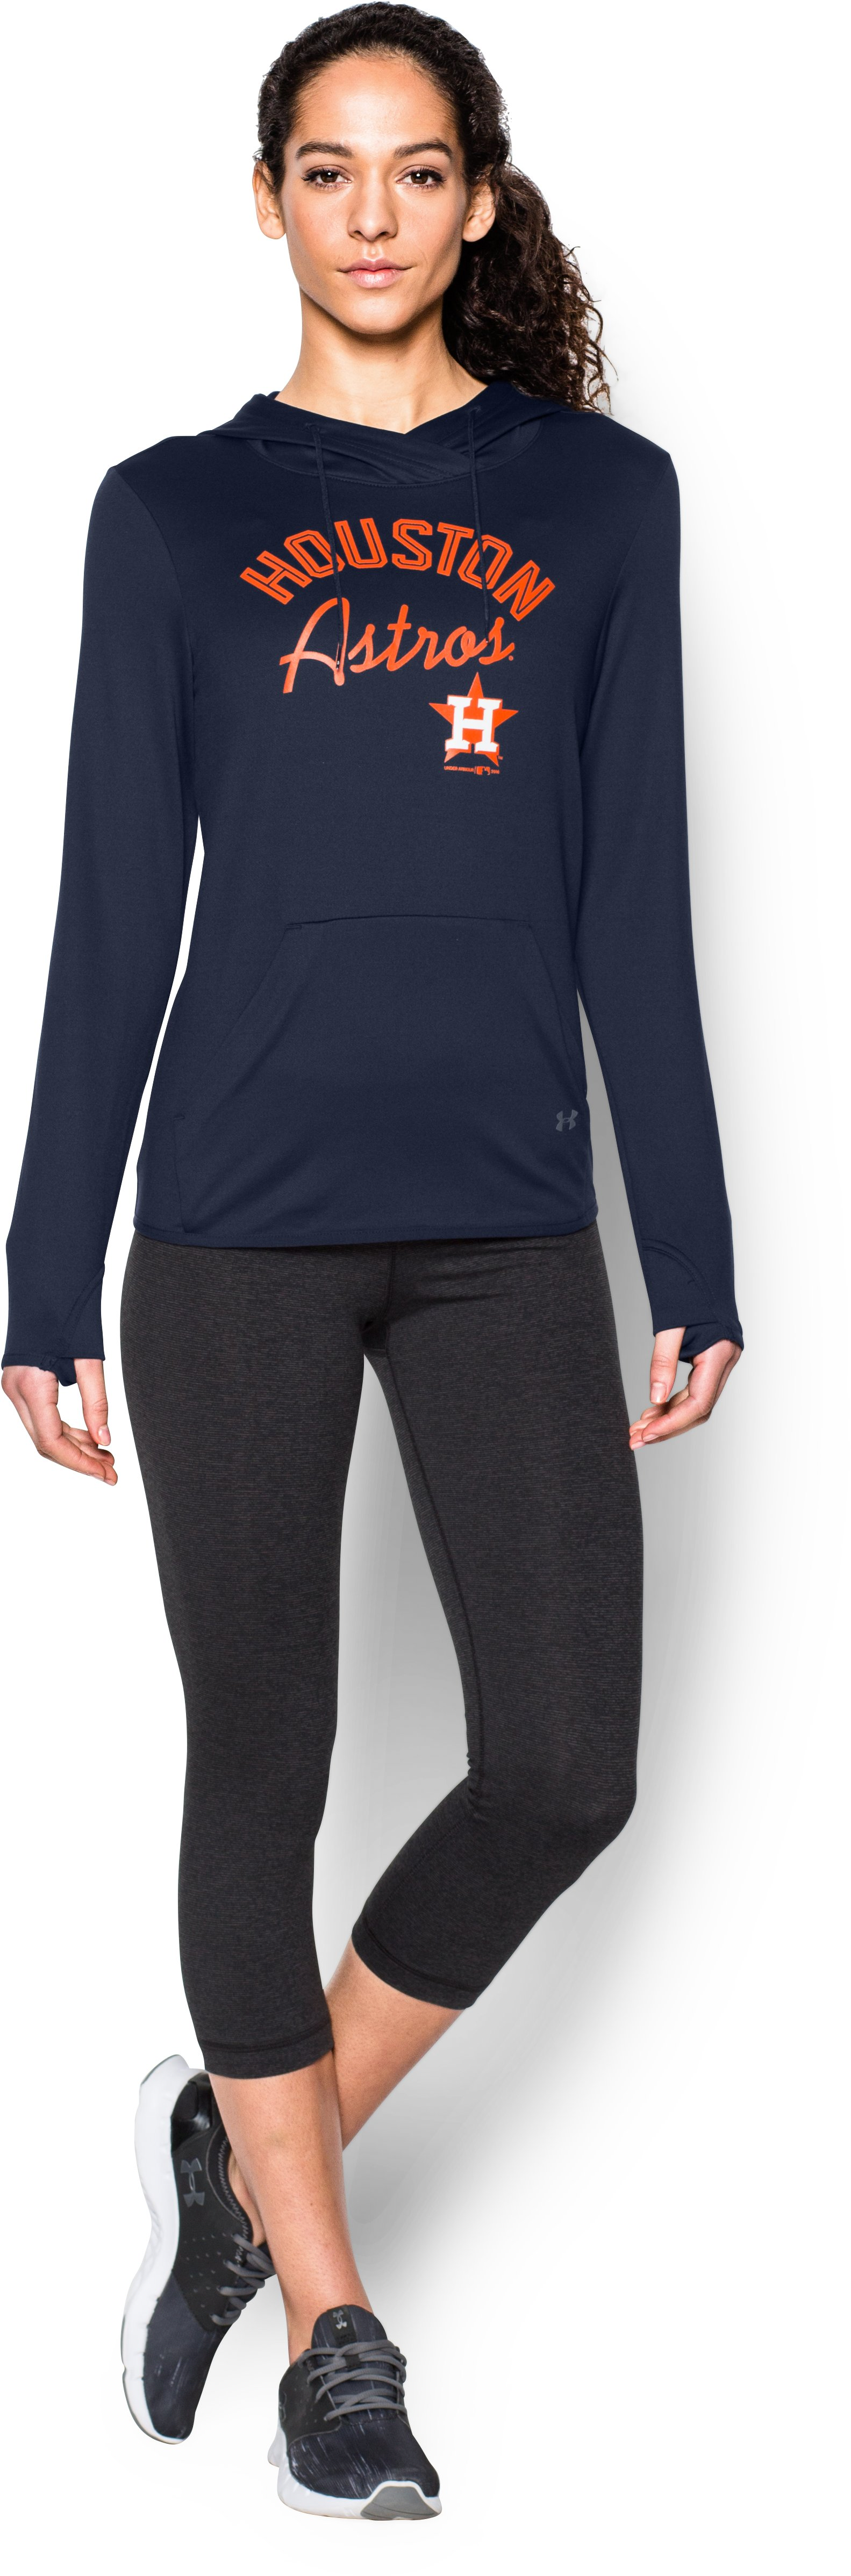 Women's Houston Astros UA French Terry Hoodie, Midnight Navy, zoomed image